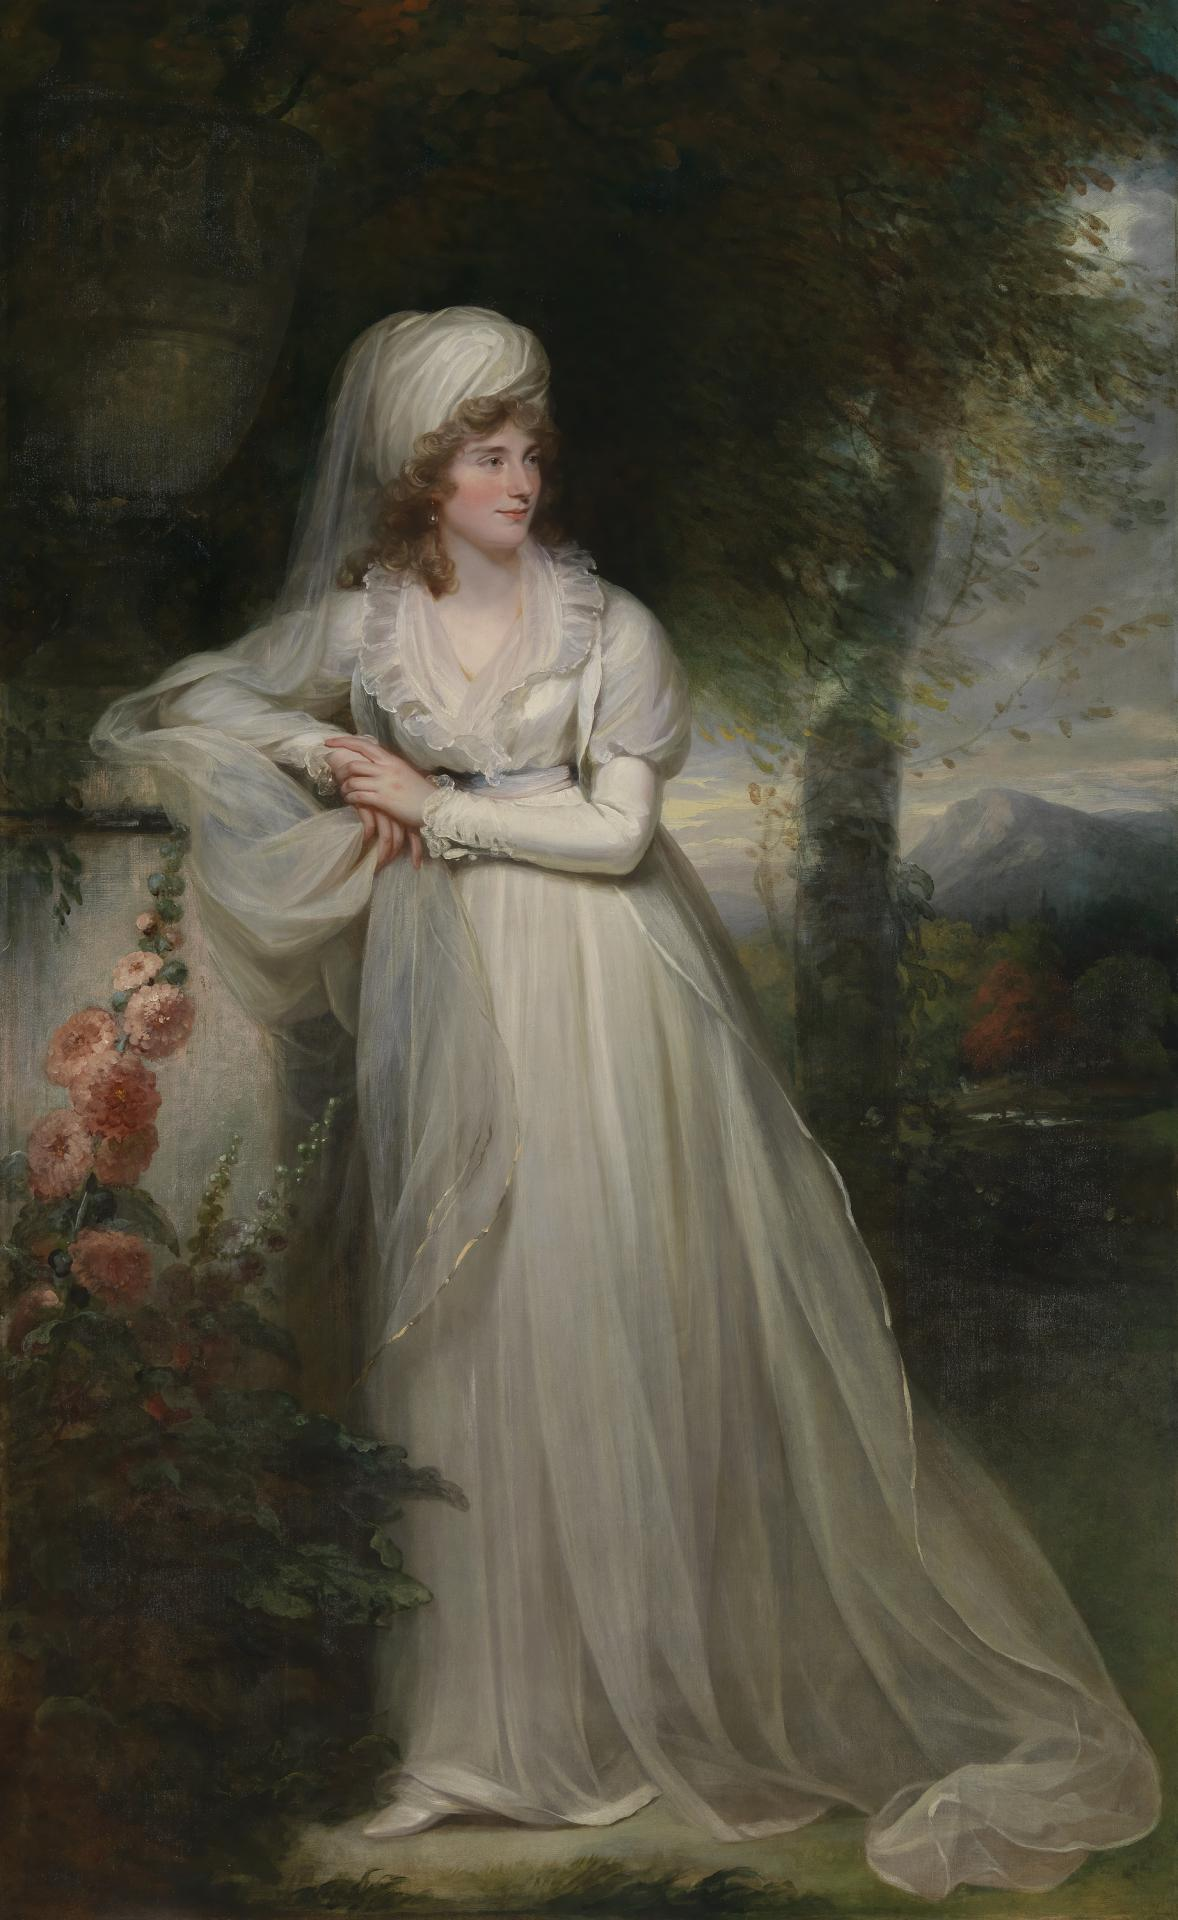 Lady Rous née Charlotte Maria Whittaker, second wife of the 6th Baronet, later, Earl of Stradbroke